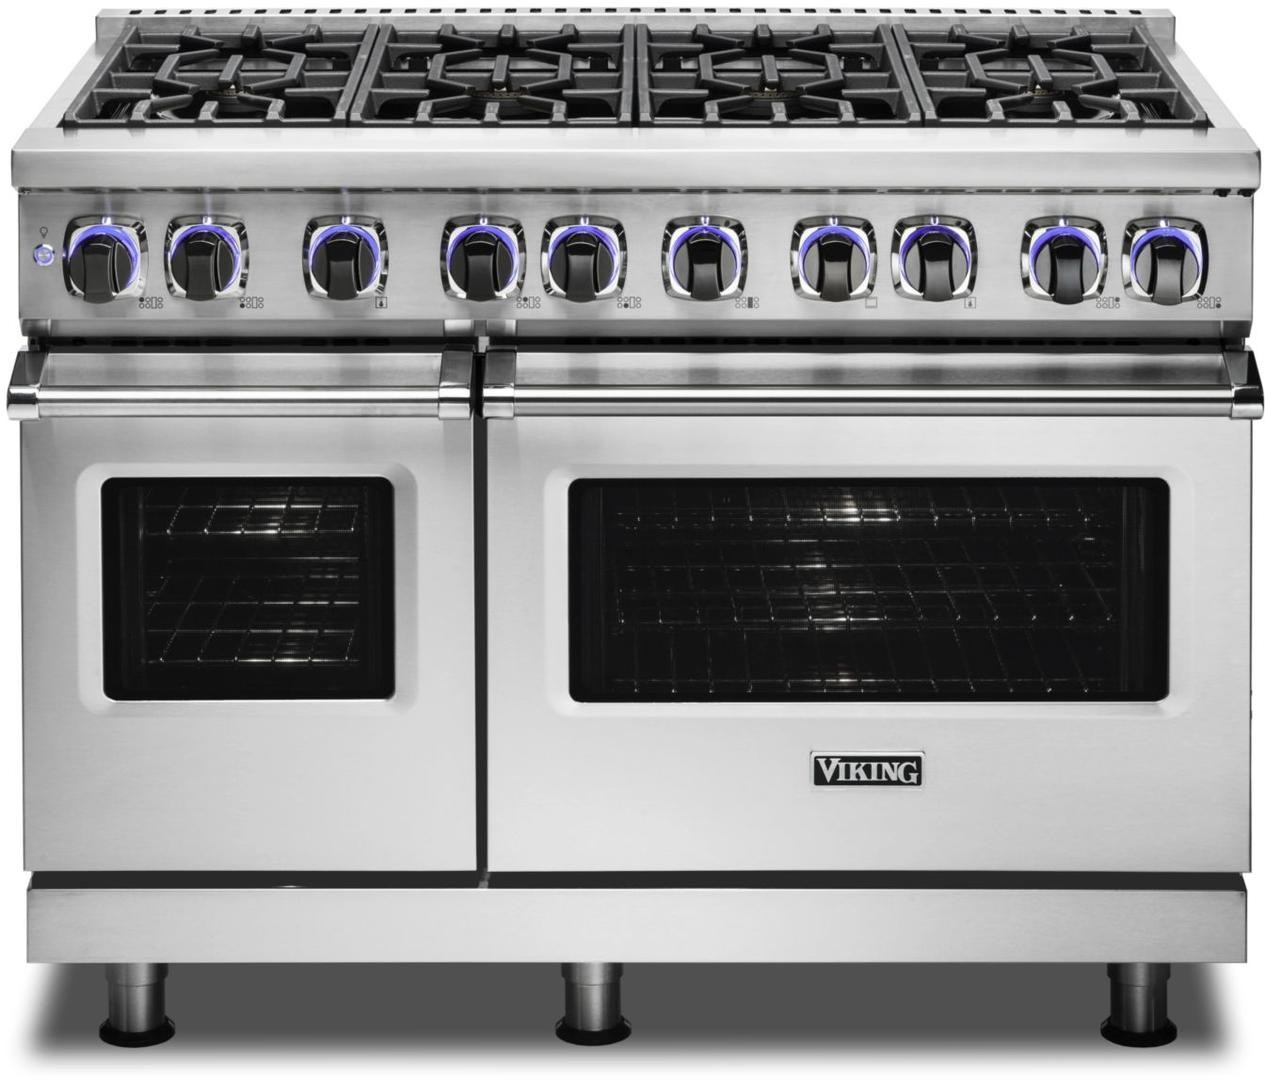 Viking Vgr74828bss 48 Inch Pro Style Freestanding Gas Range With 8 Viking Elevation Burners Varisimmer Setting Surespark Ignition System Gentleclose Door Truglide Full Extension Racks Gourmet Glo Infrared Broiler Proflow Convection Baffle